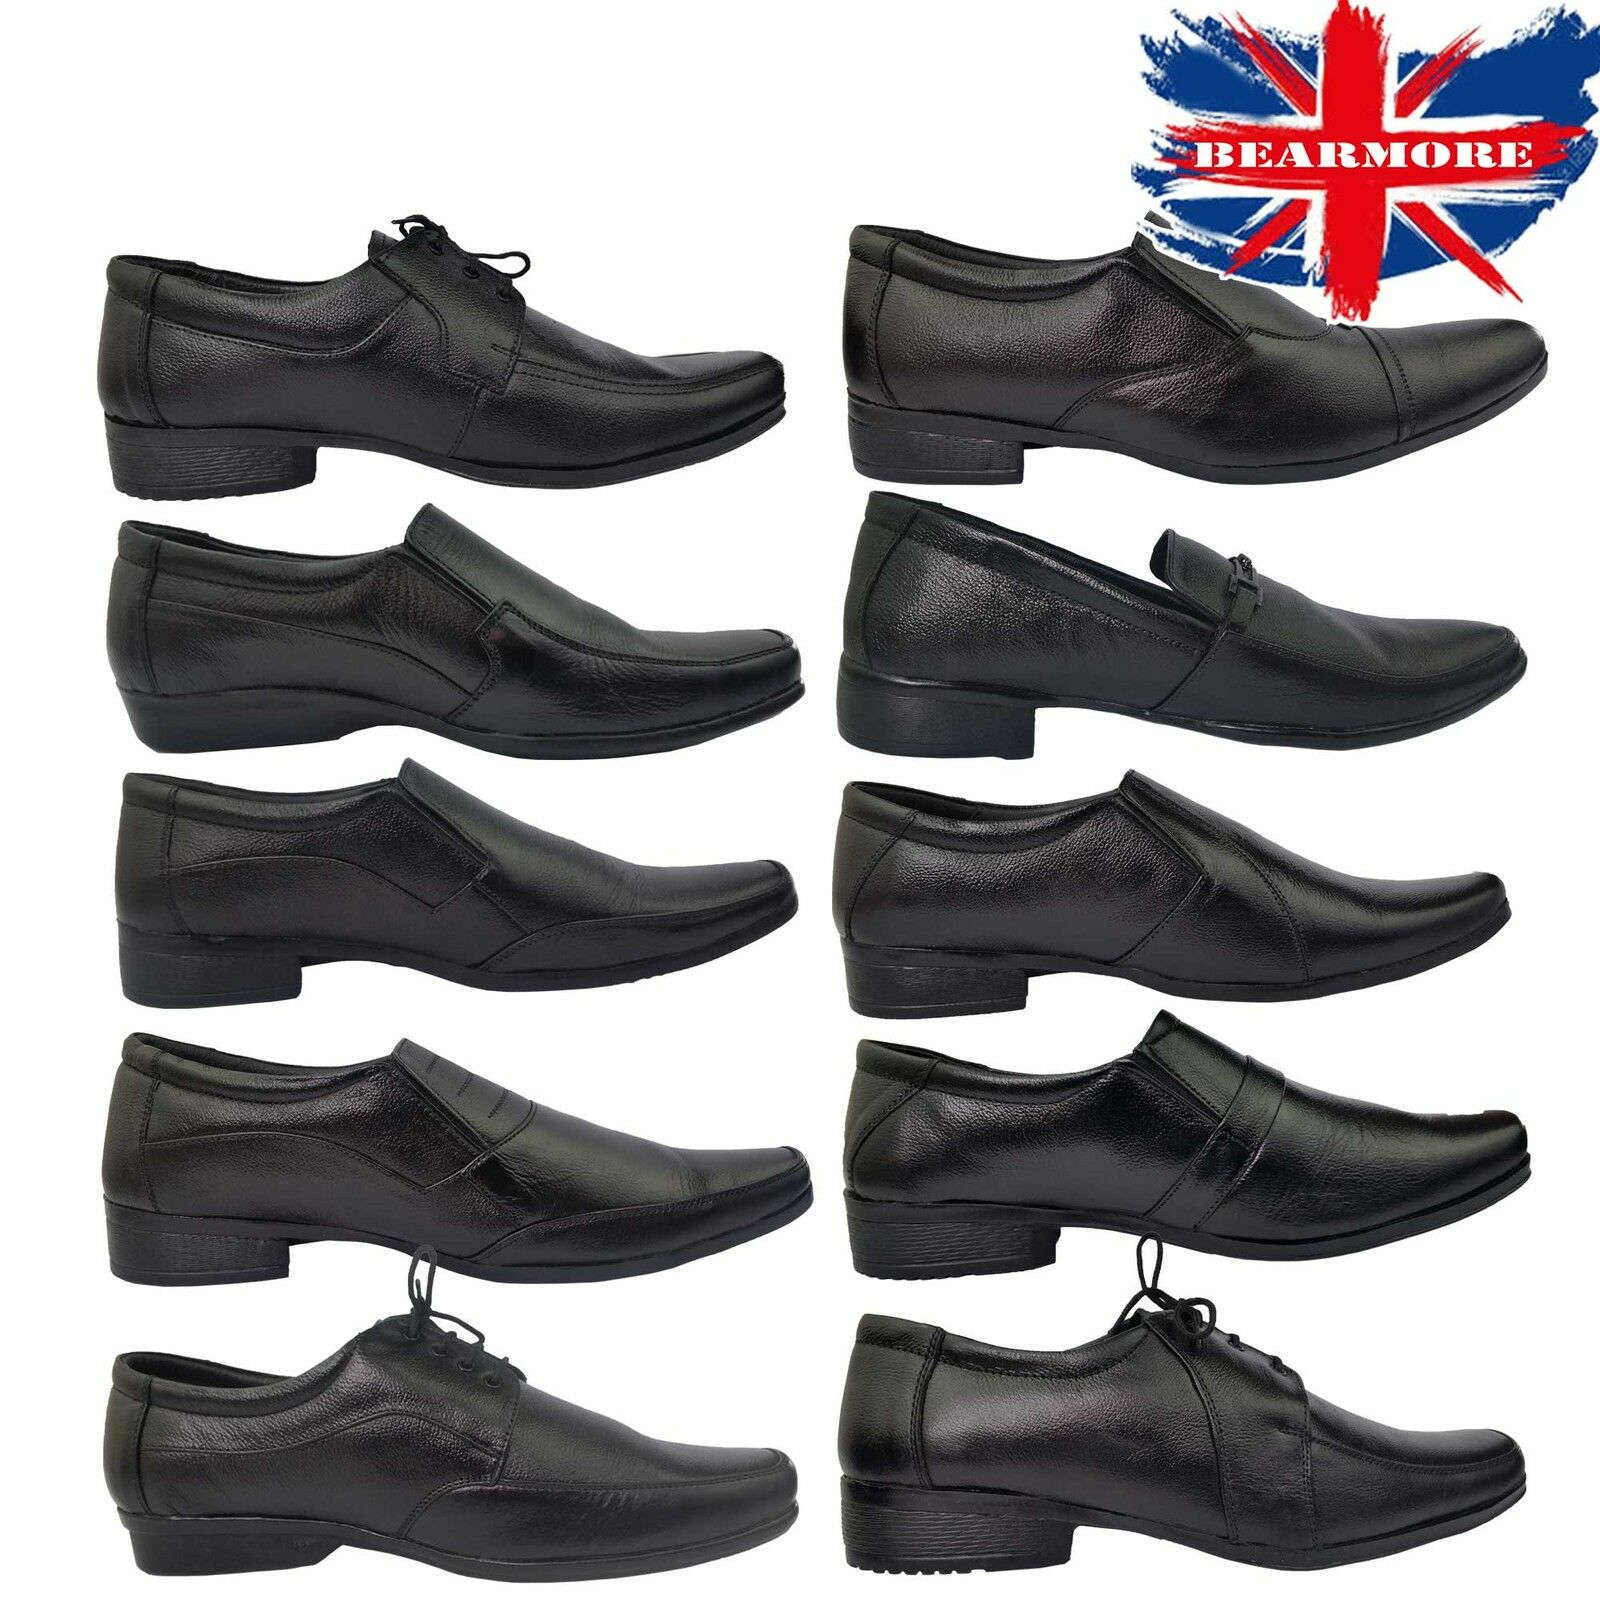 NEW MENS SHOES GENTS SMART OFFICE WEDDING SHOES MENS DRESS WORK CASUAL FORMAL 45aba9